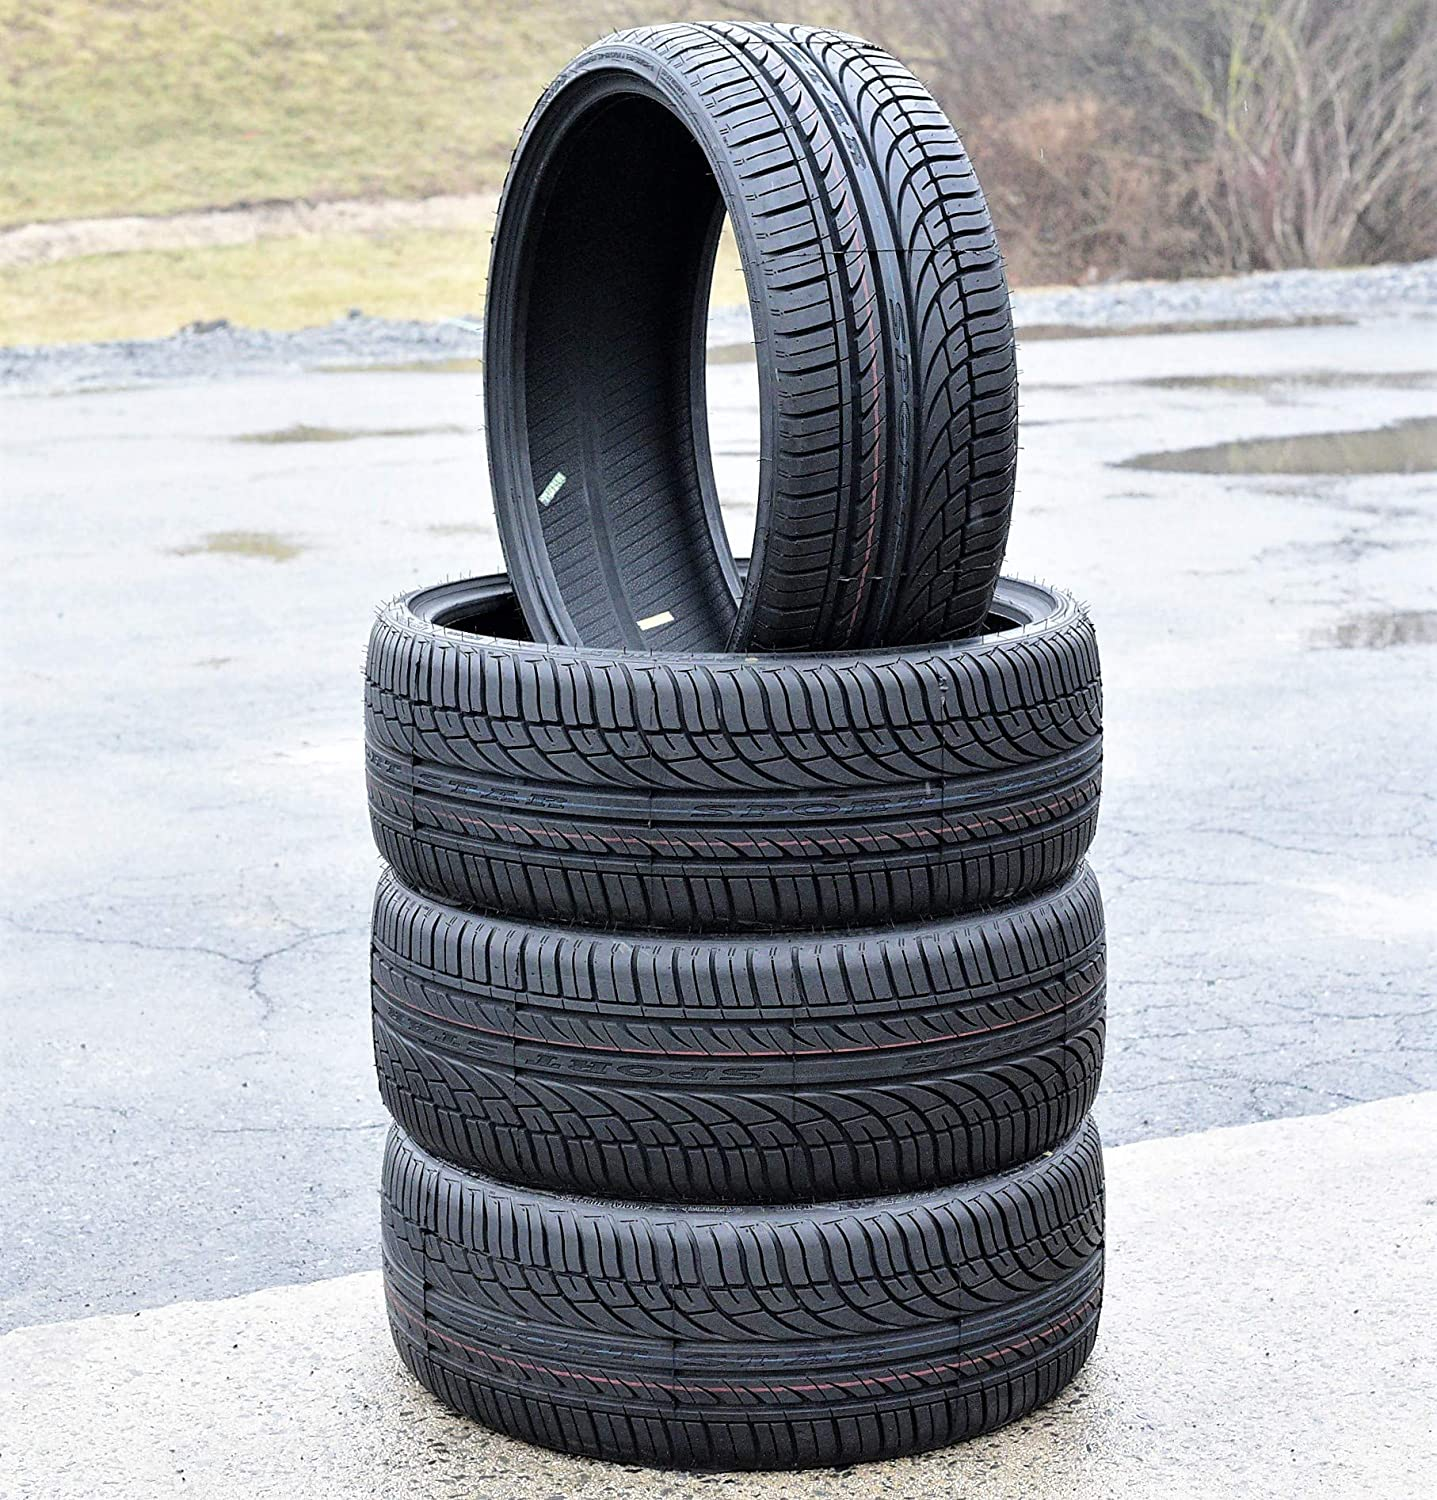 FOUR Set of 4 Fullway HP108 High Performance Radial Tires-225//30ZR22 86W XL